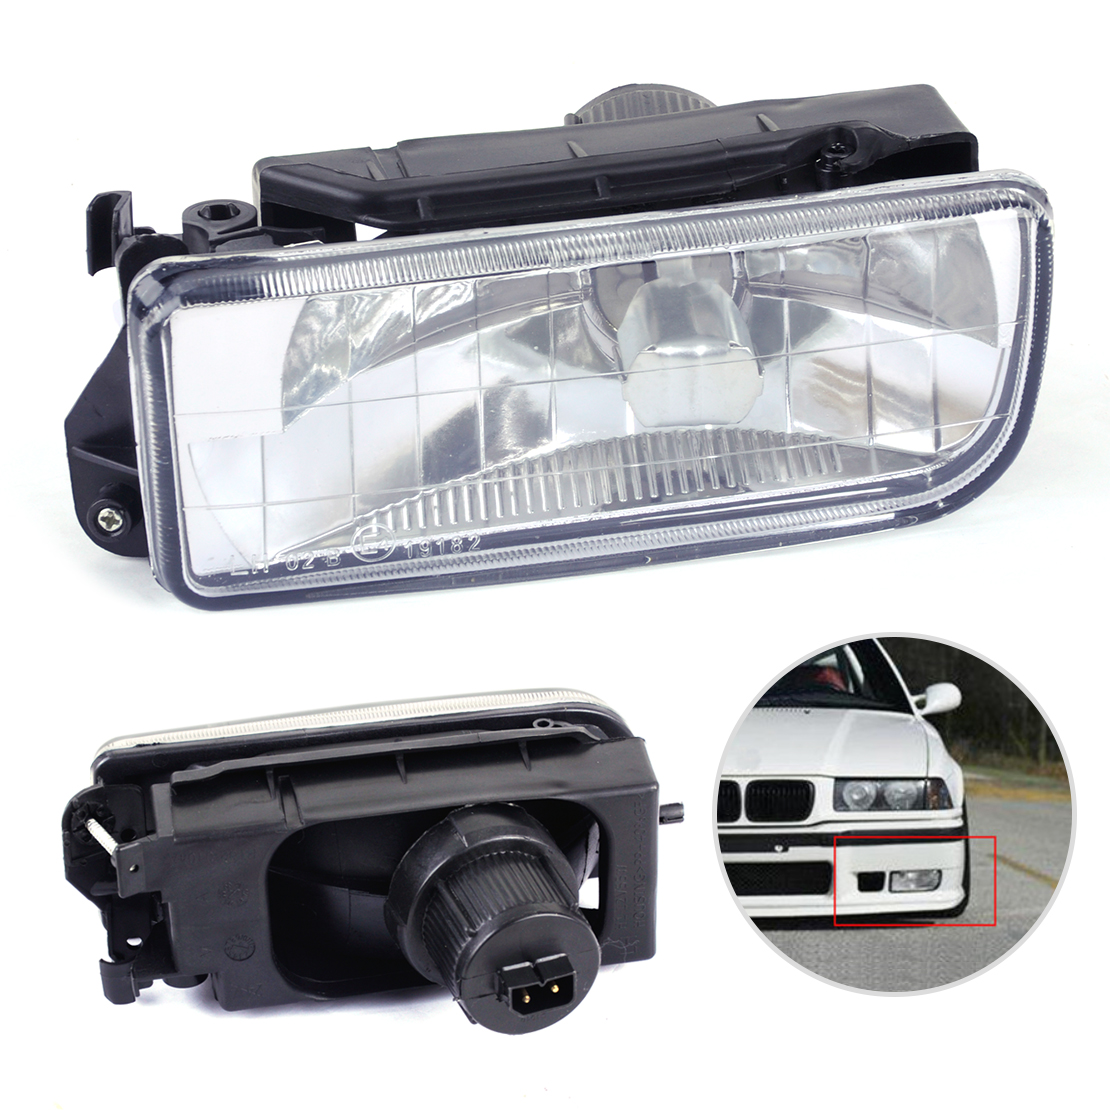 beler Left Bumper Driving Fog Light Housing Case Clear Lens 63178357389 fit for BMW E36 318i 318is 320i 323i 325i 328i M3 2012 hot sell single pendant light modern brief balcony lights bar lamp lamps child lamp free shipping